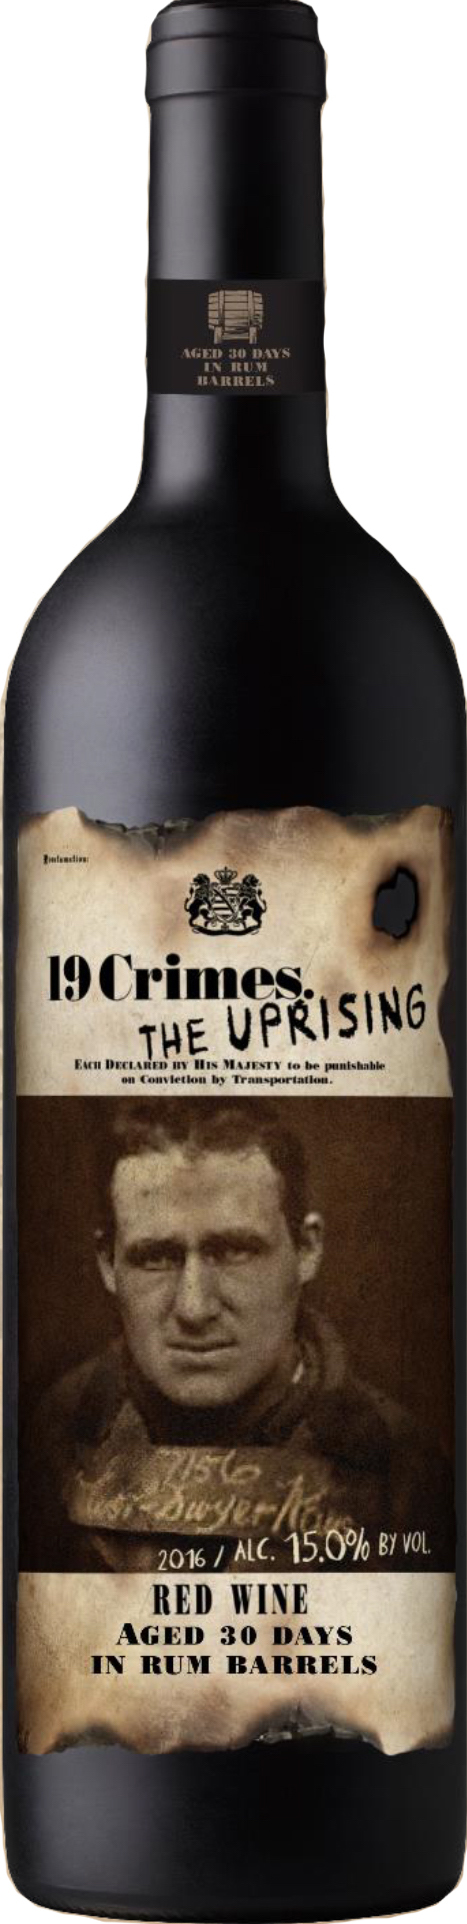 19 Crimes The Uprising 2016